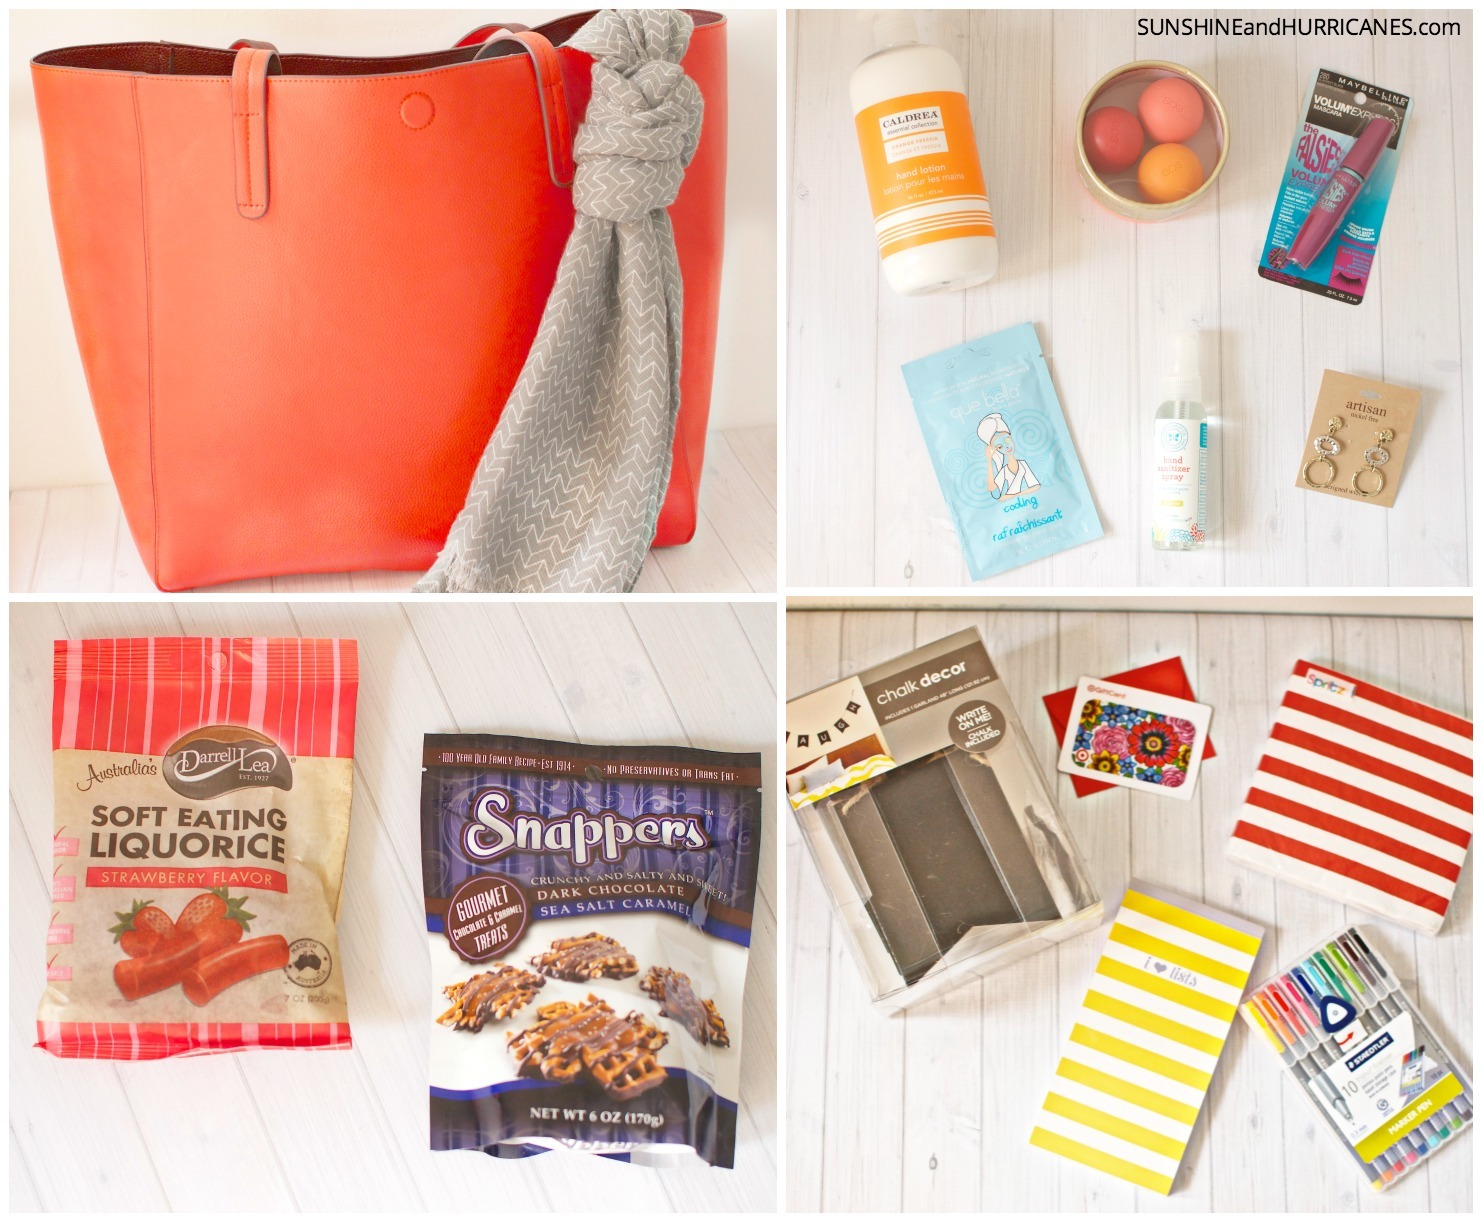 The holidays are coming up, wouldn't it be great to win all these fun Target themed items as a little gift for you or to give to others? Enter our favorite things giveaway to win! sunshineandhurricanes.com